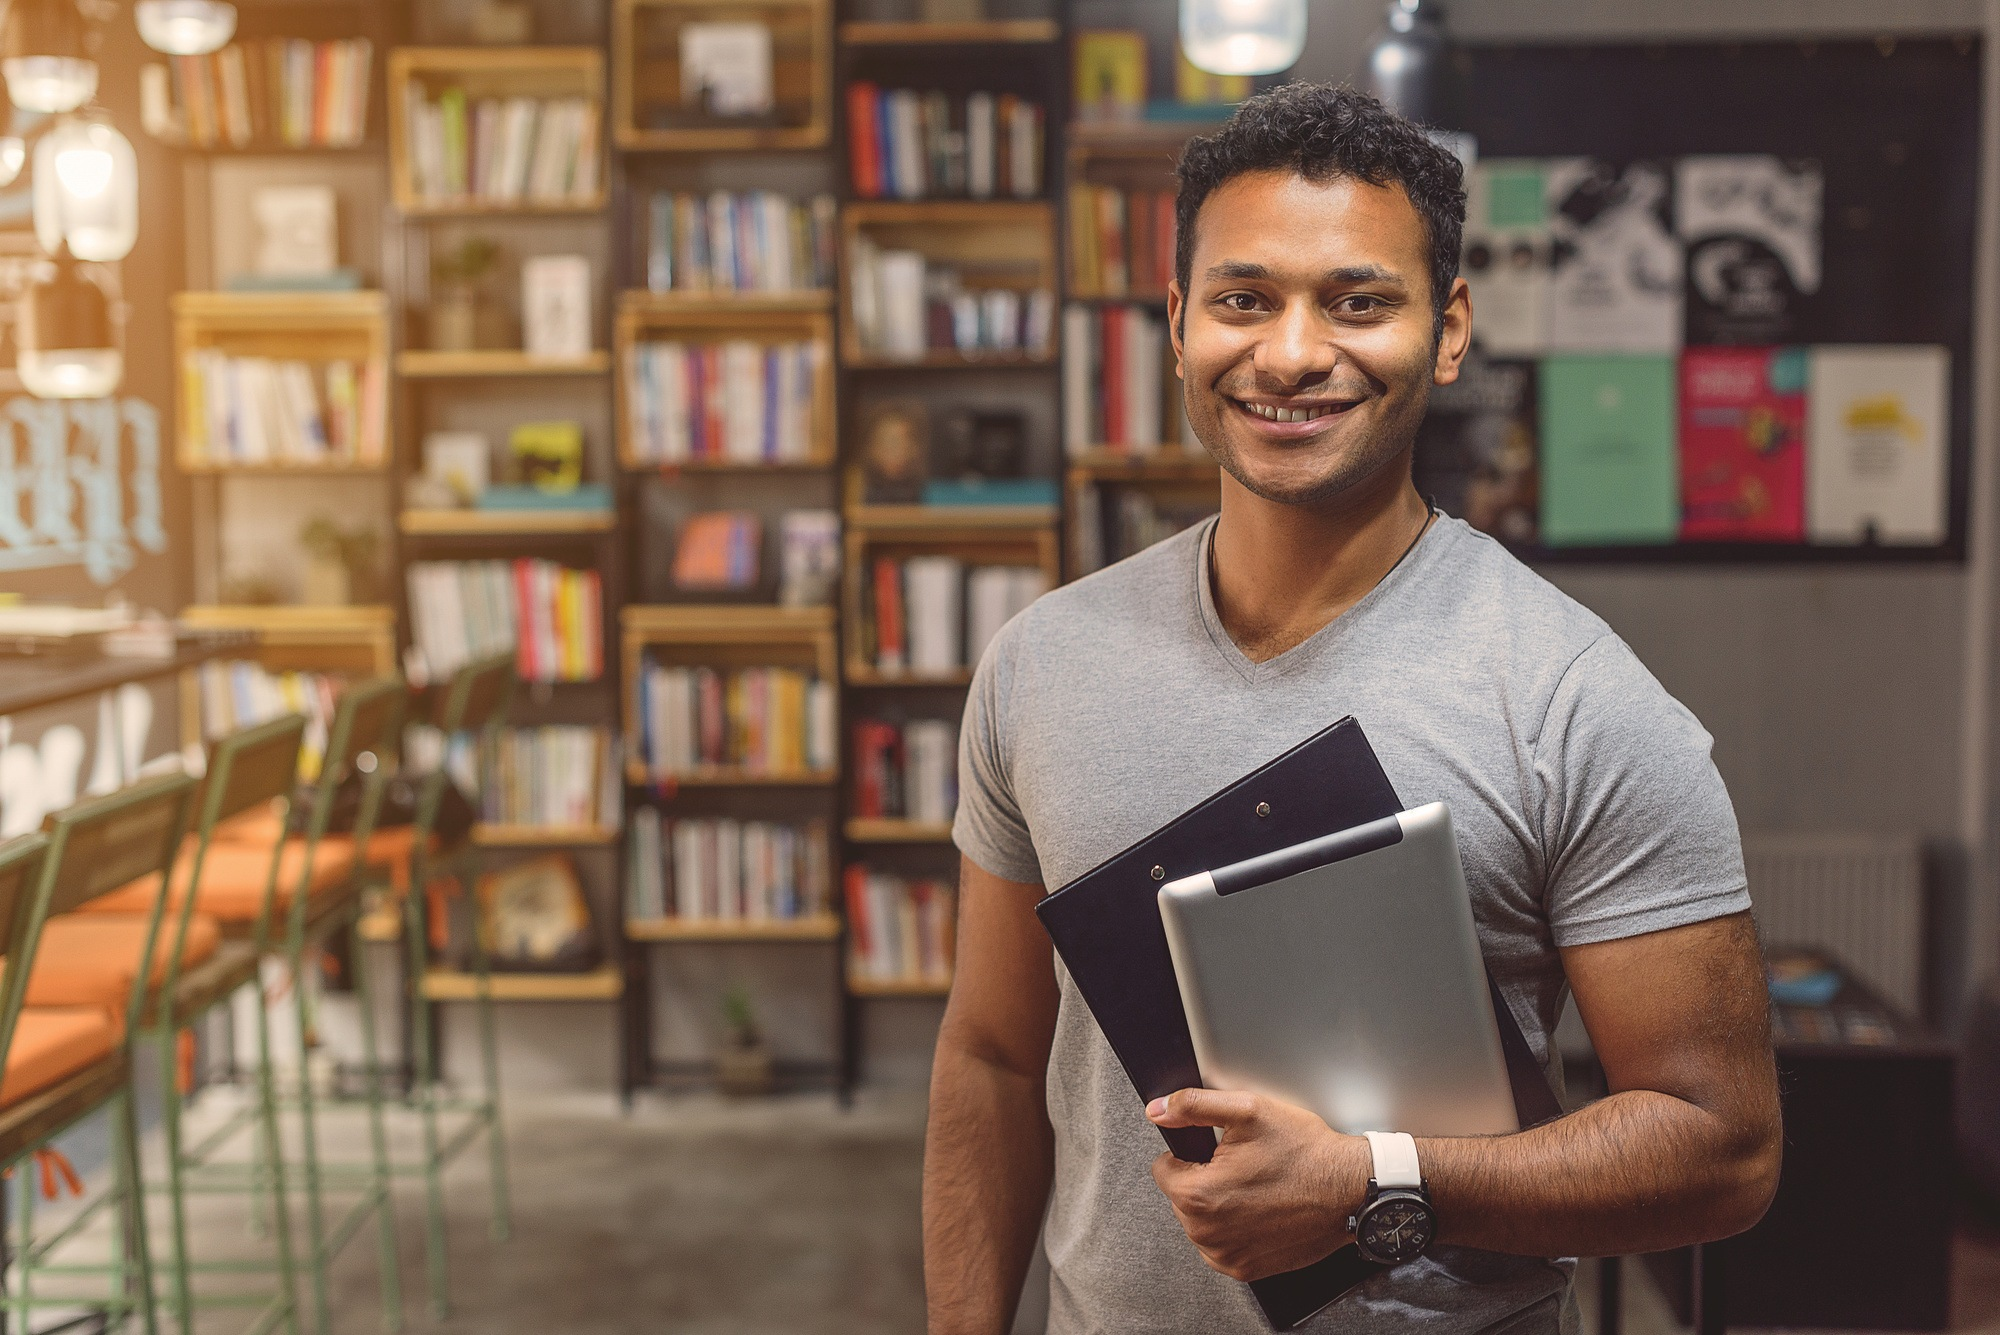 African man standing in campus library